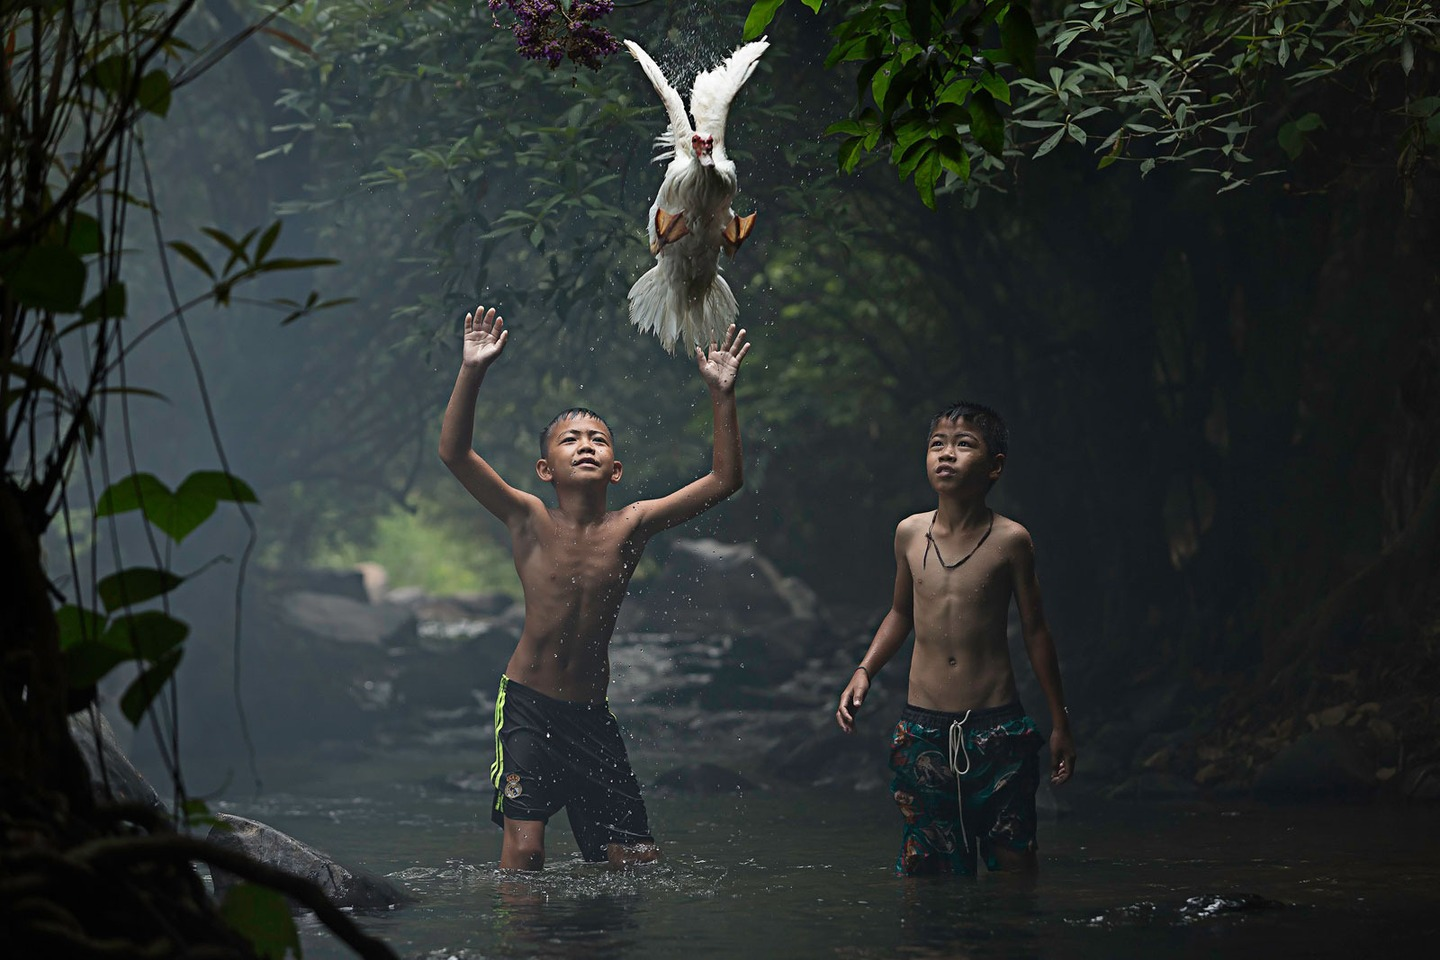 5-Sarah-Wouters-National-Geographic-Traveler-Photo-Contest-2015